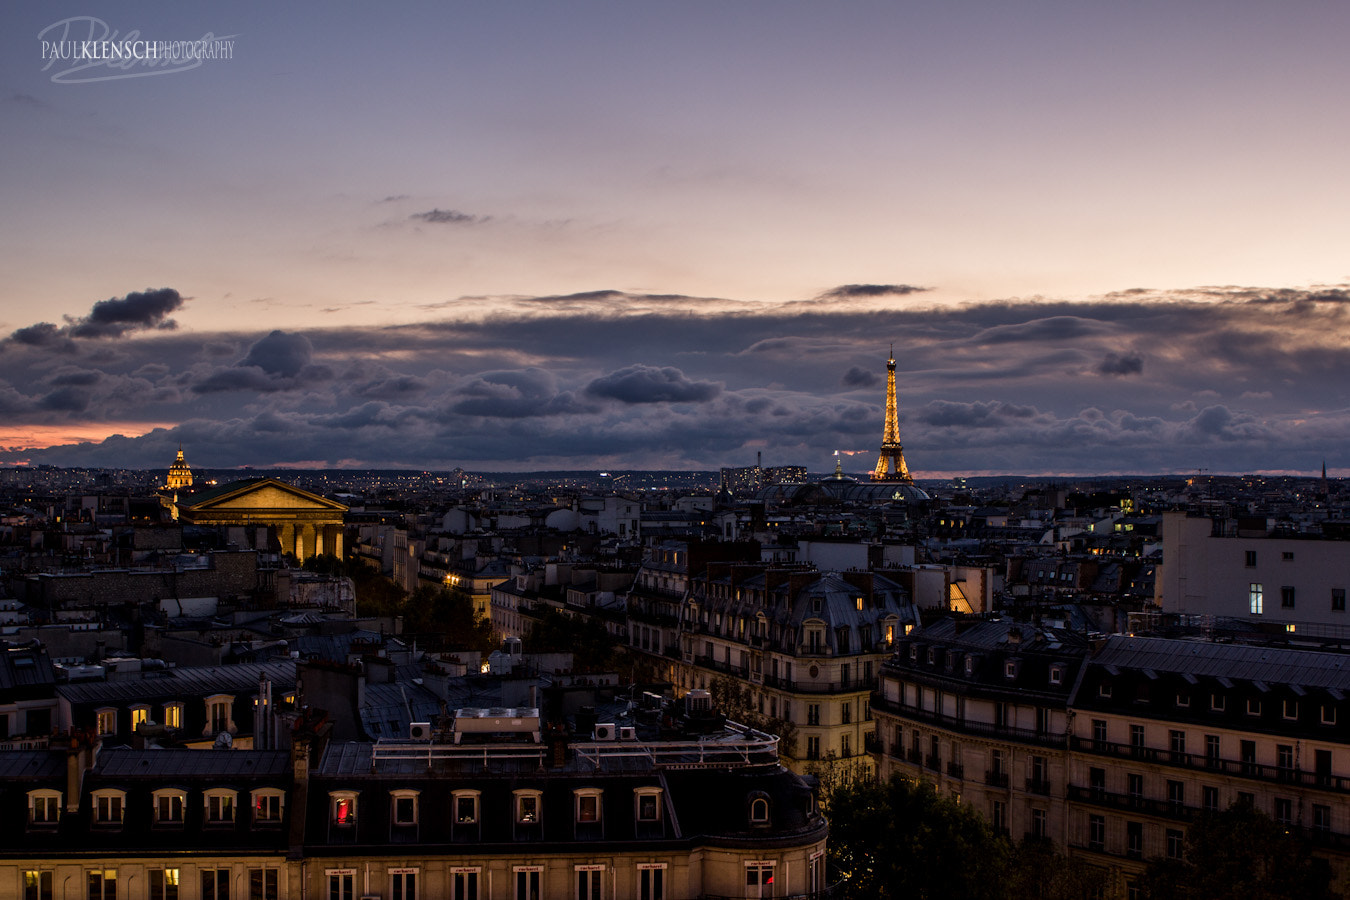 Photograph Paris Nightfall by Paul Klensch on 500px